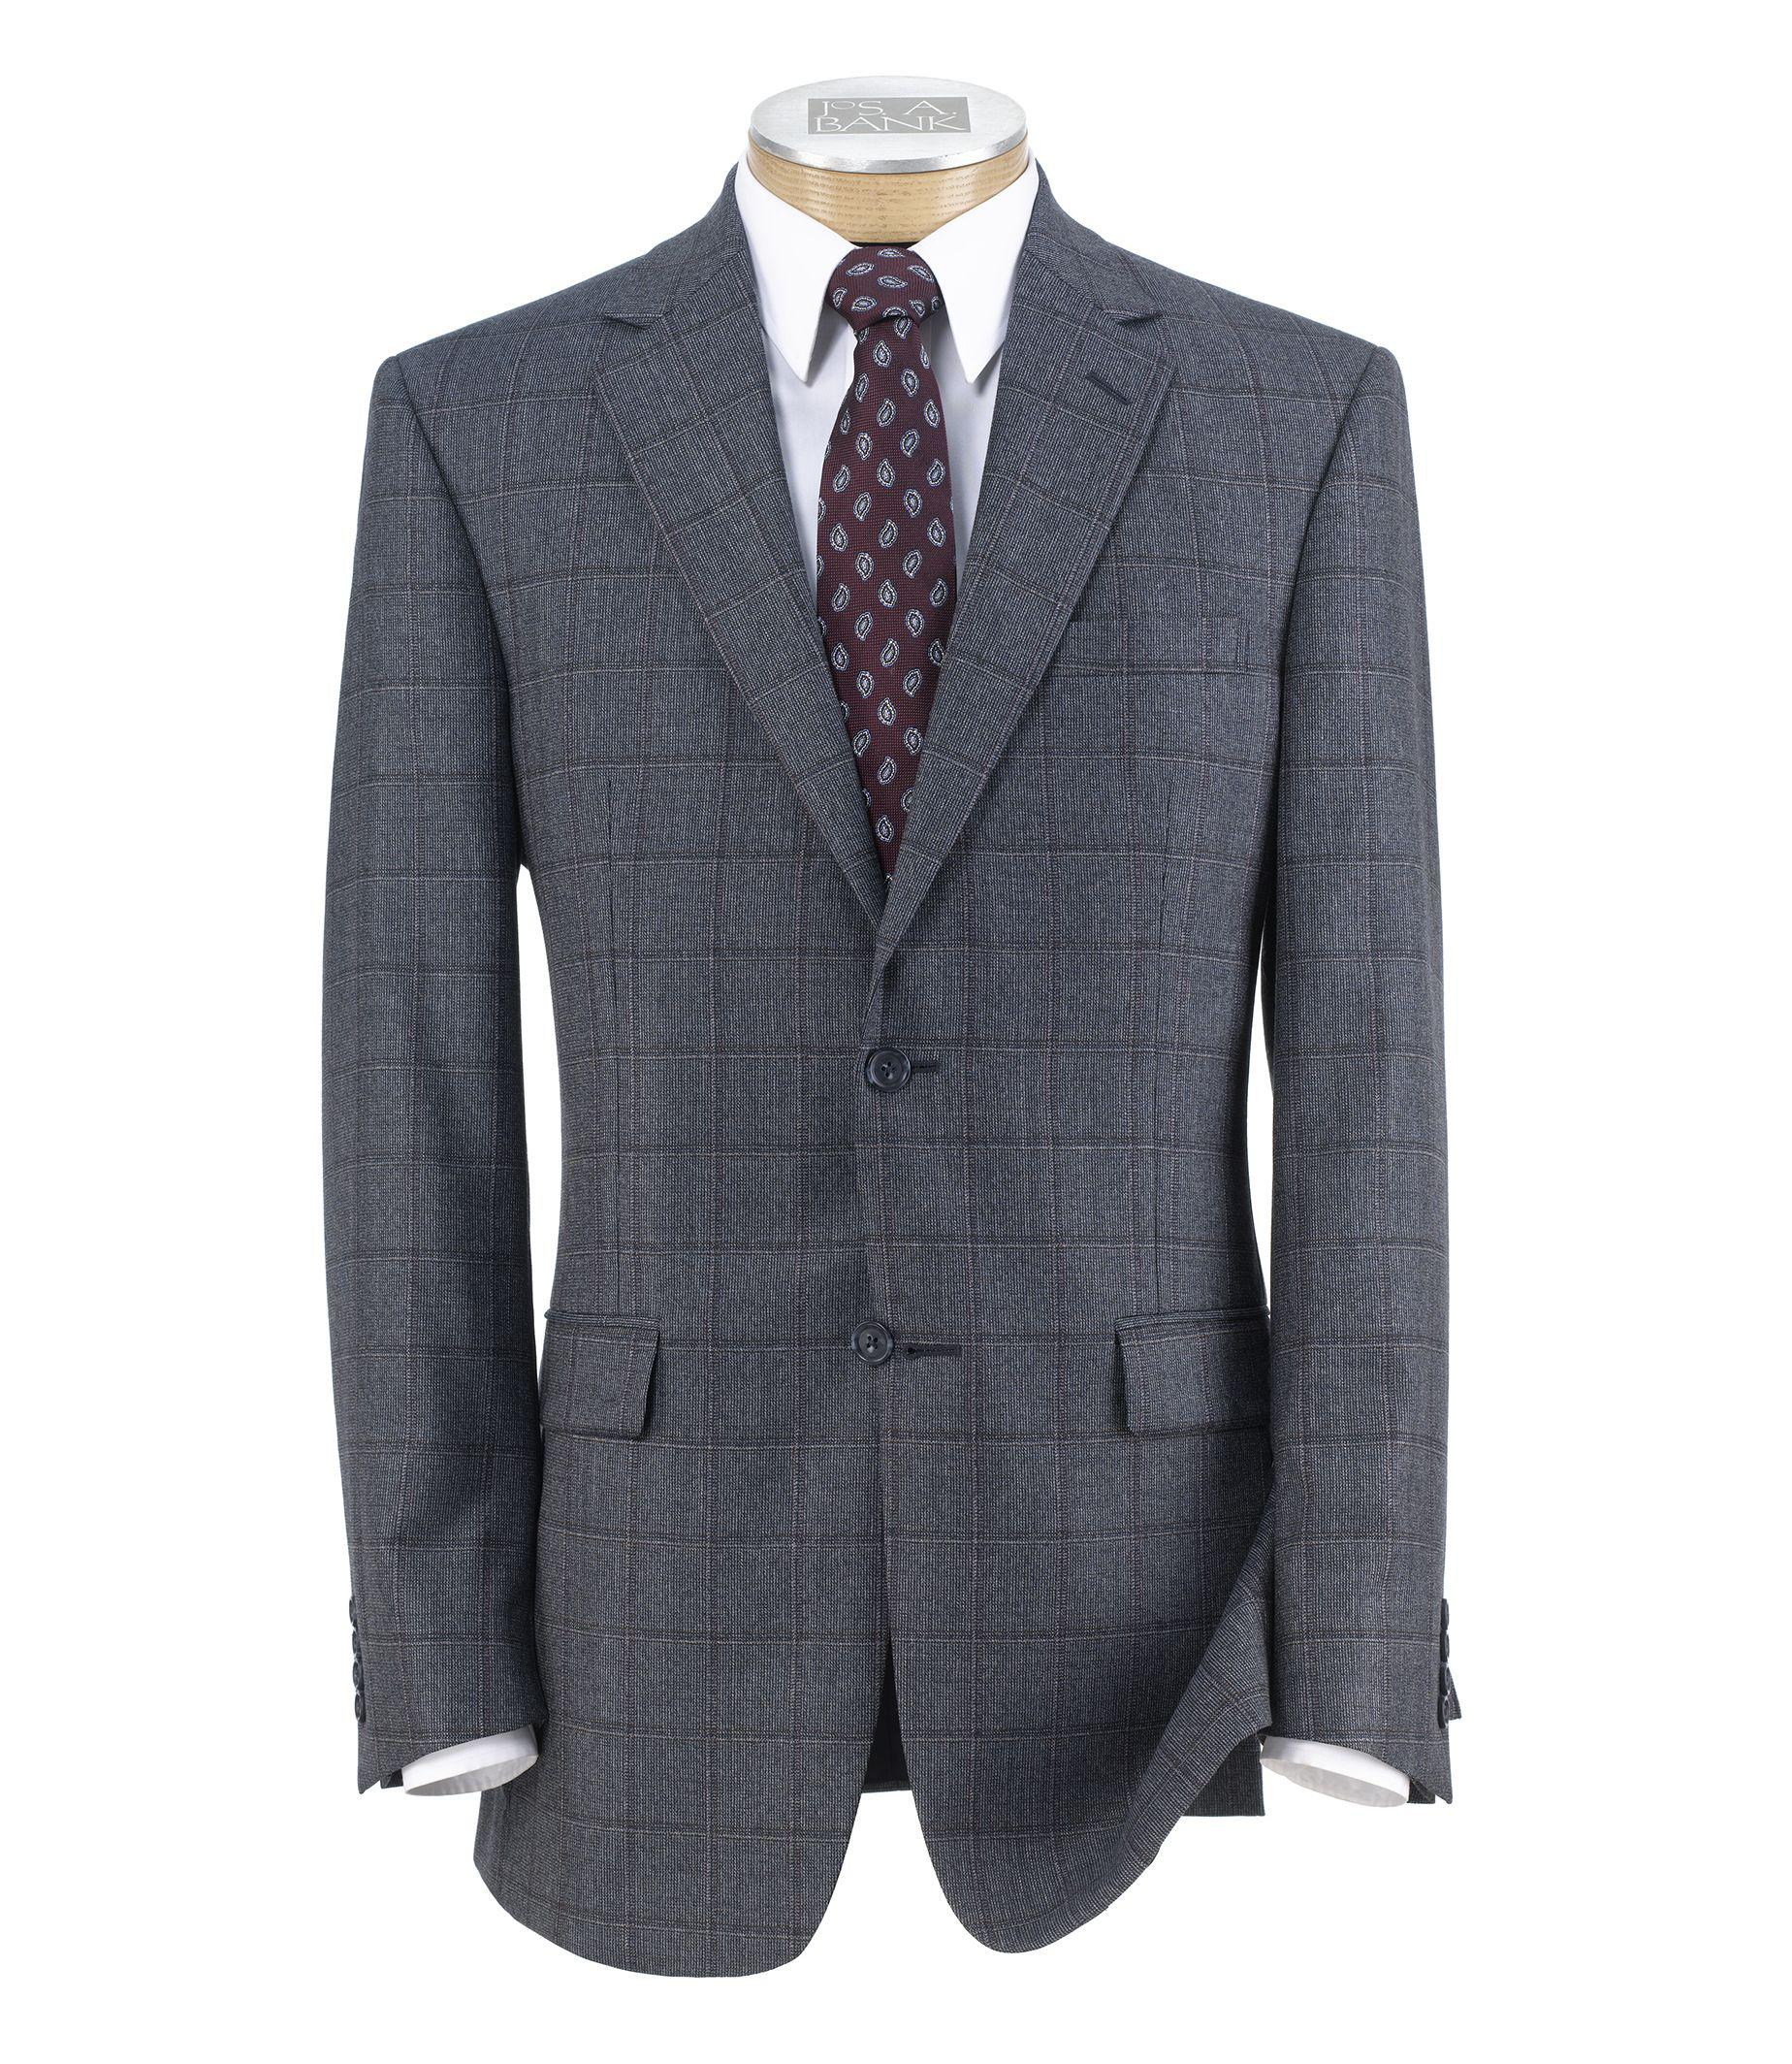 Jos. a. bank Traveler Wool Tailored Fit 2-button Sportcoat ...